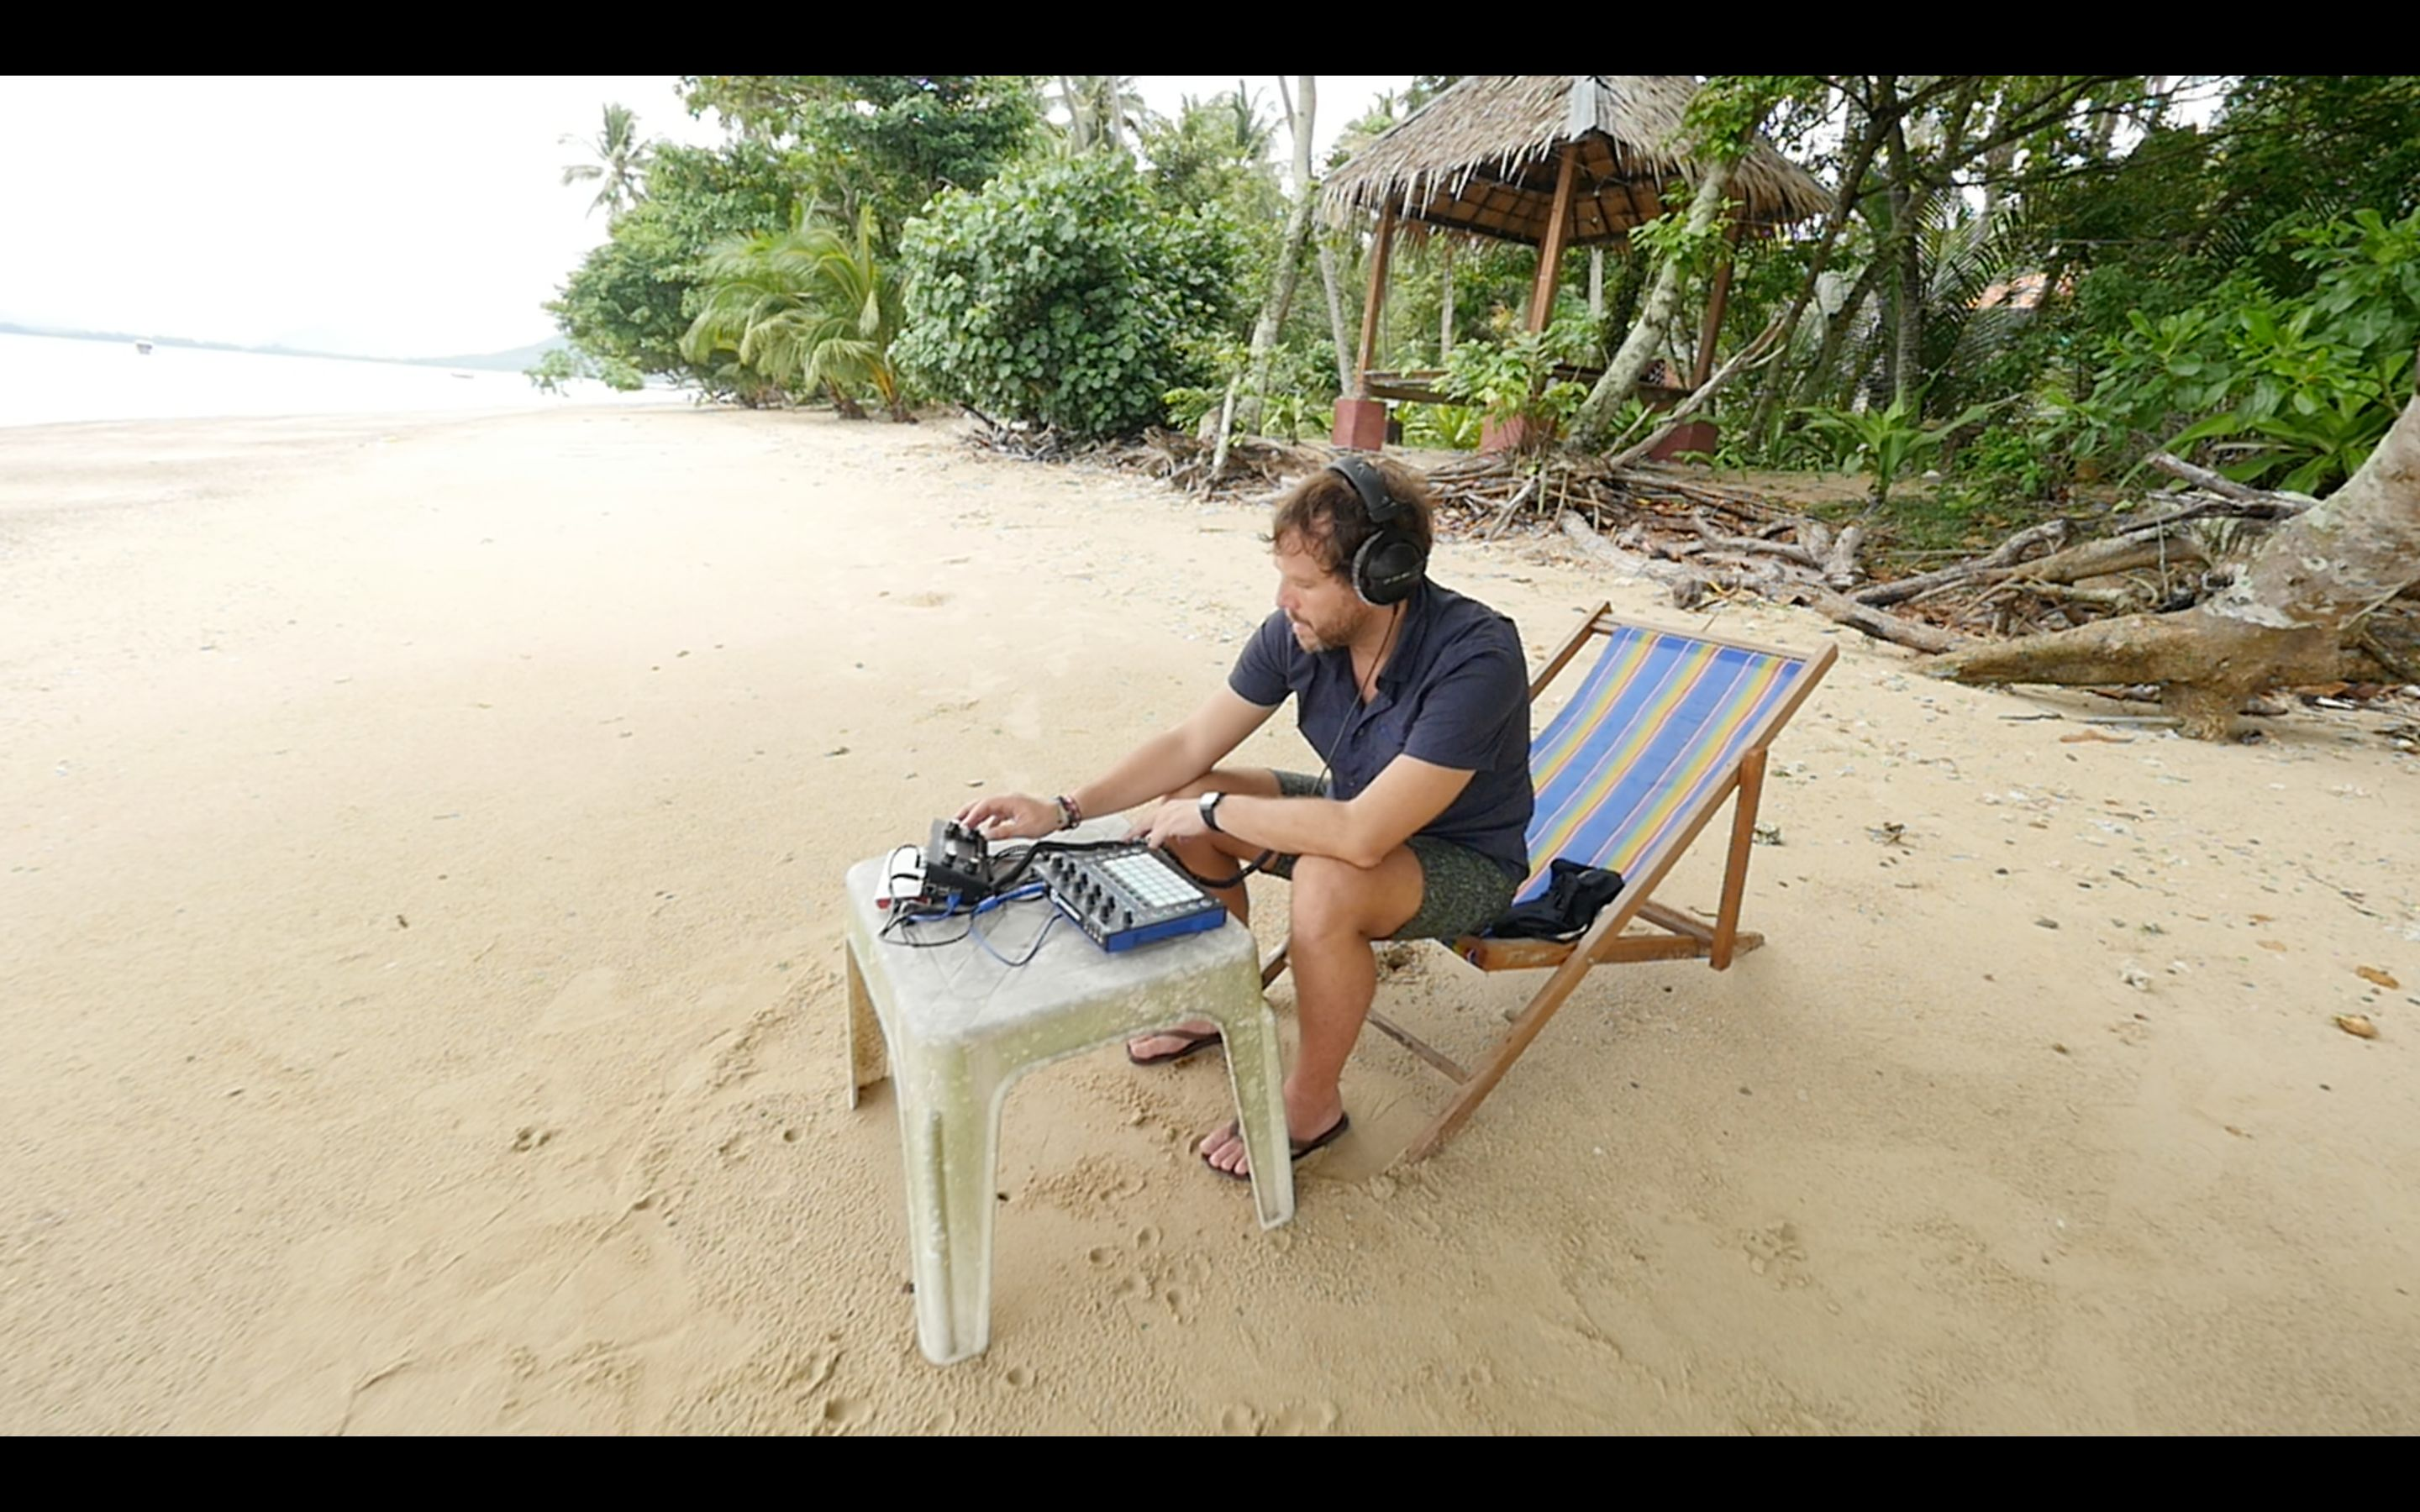 Sebastian Seifert at inventors camp this summer on Koh Lon, off the coast of Thailand.